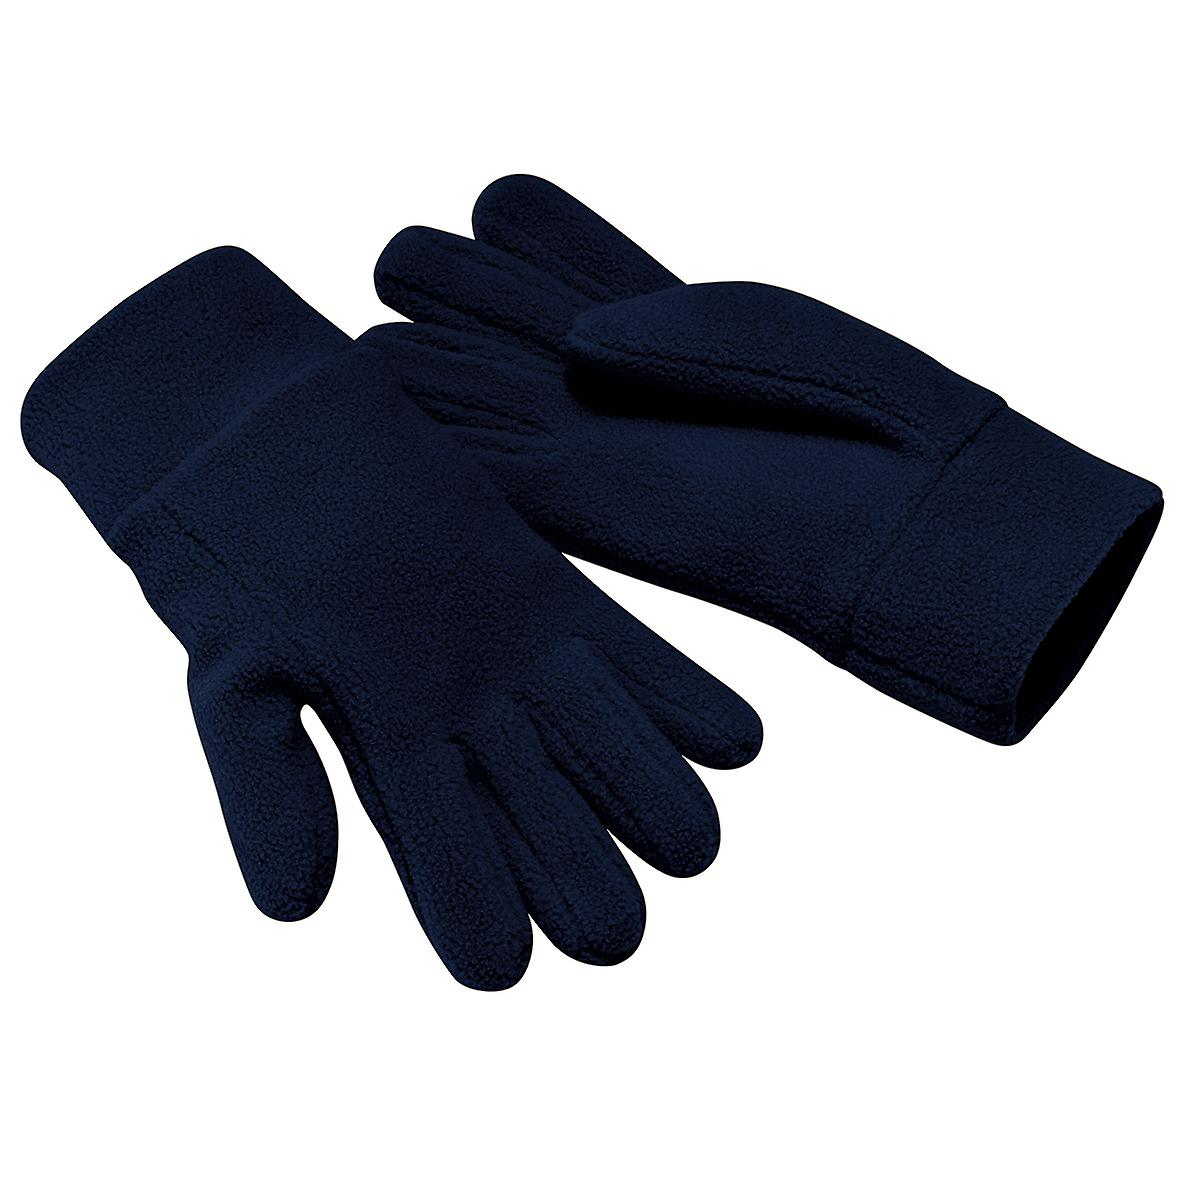 Beechfield Unisex Suprafleece Anti-Pilling Alpine Winter Gloves